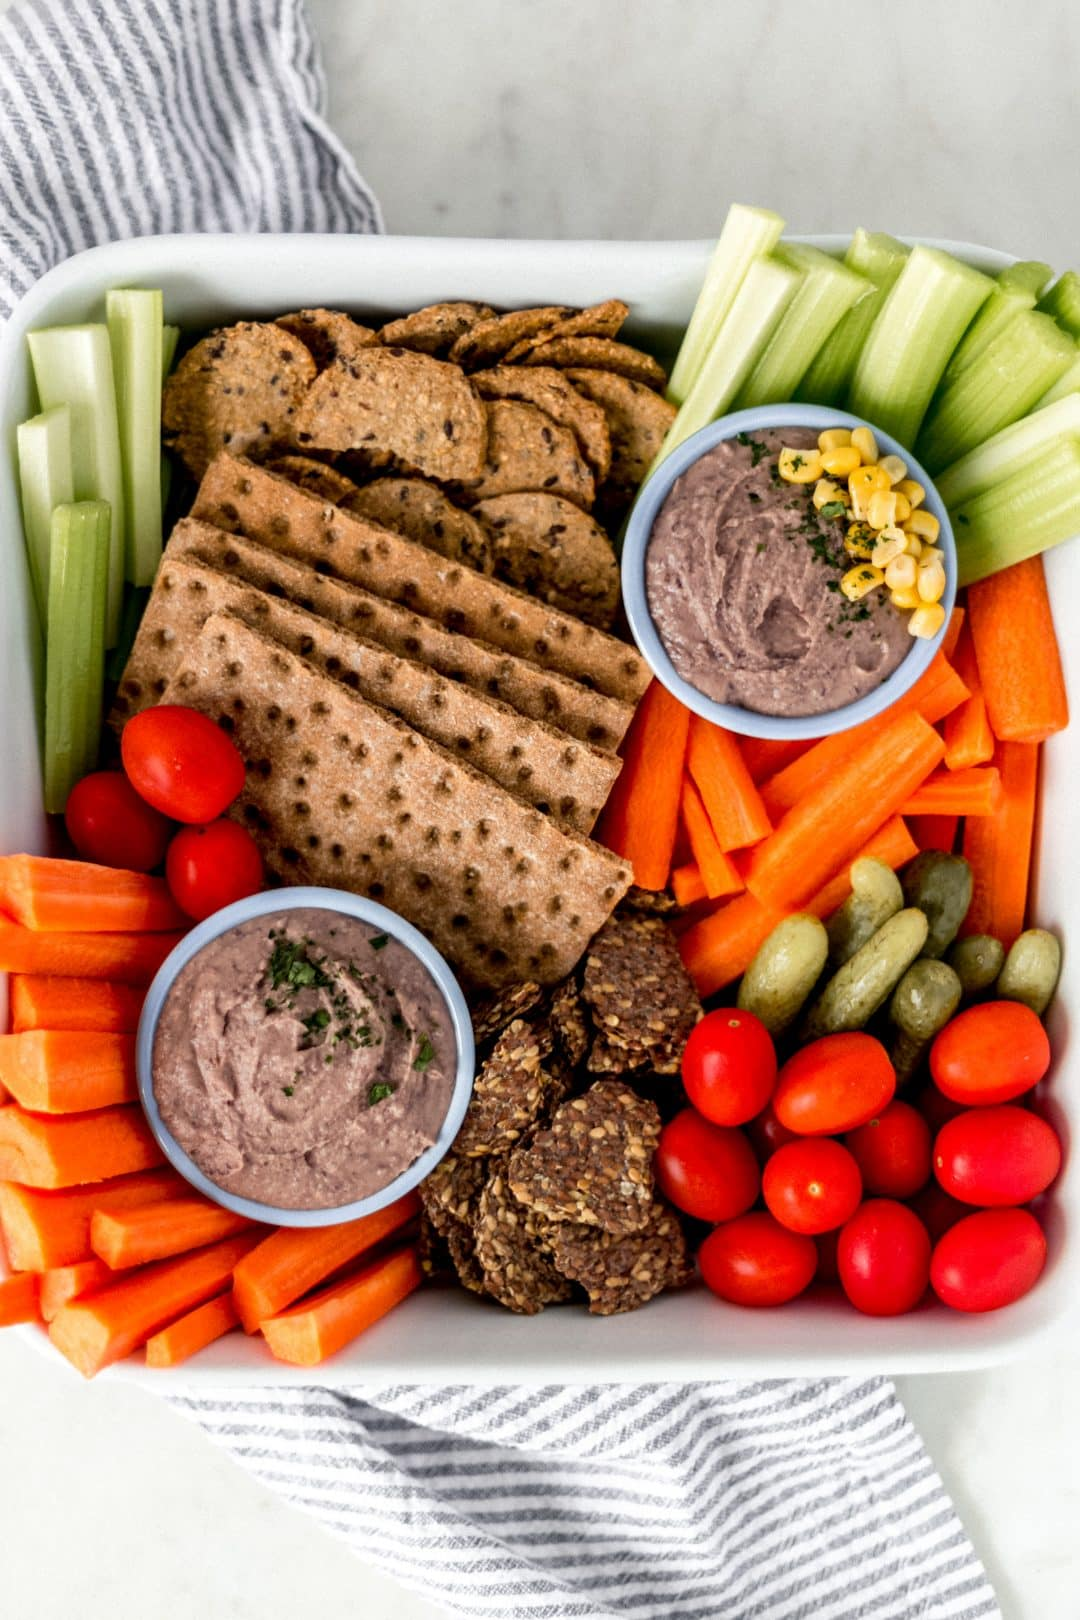 Black Bean Dip is an easy to make healthy recipe that anyone can pull together by adding black beans, spices, olive oil, and lime to a food processor. simplylakita.com #blackbeandip #vegandip